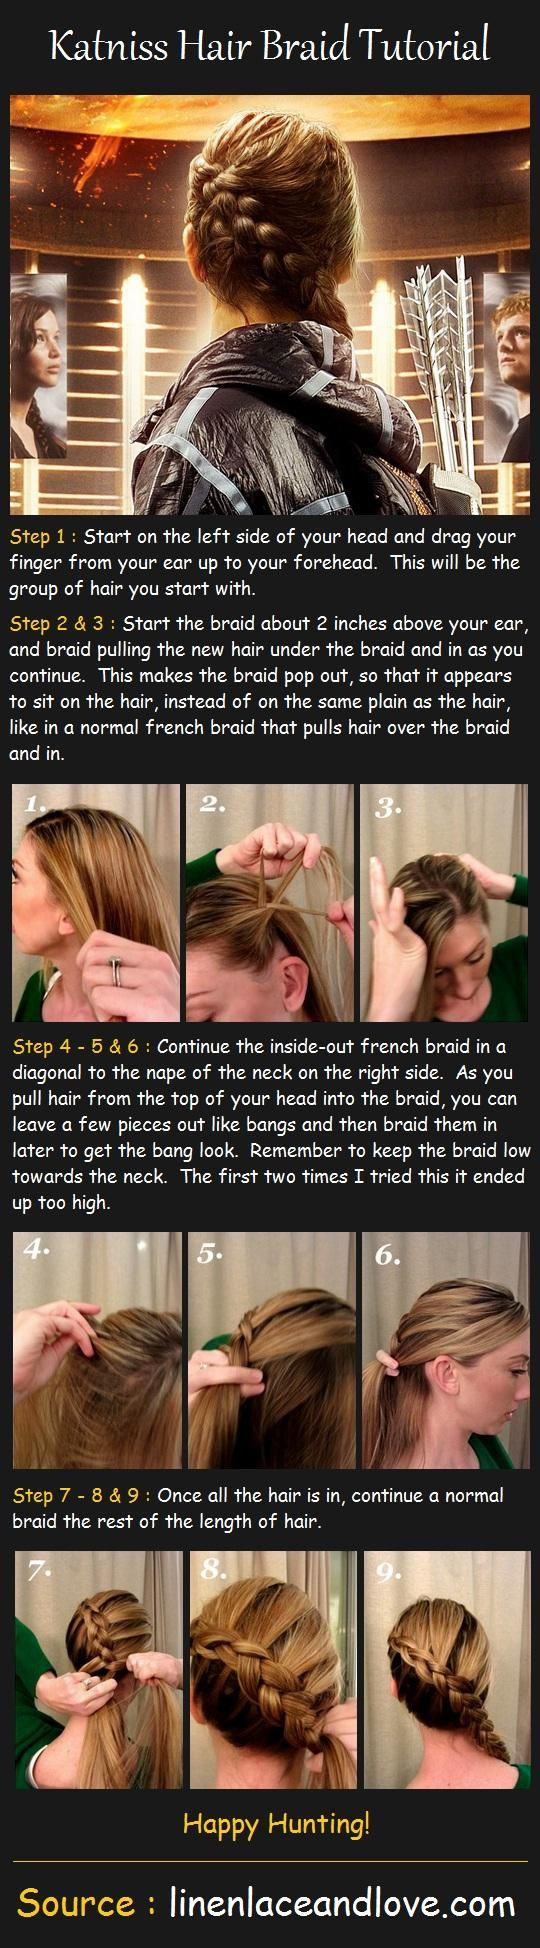 Beauty Tip: DIY Hair / katniss-hair-braid-tutorial - Fereckels